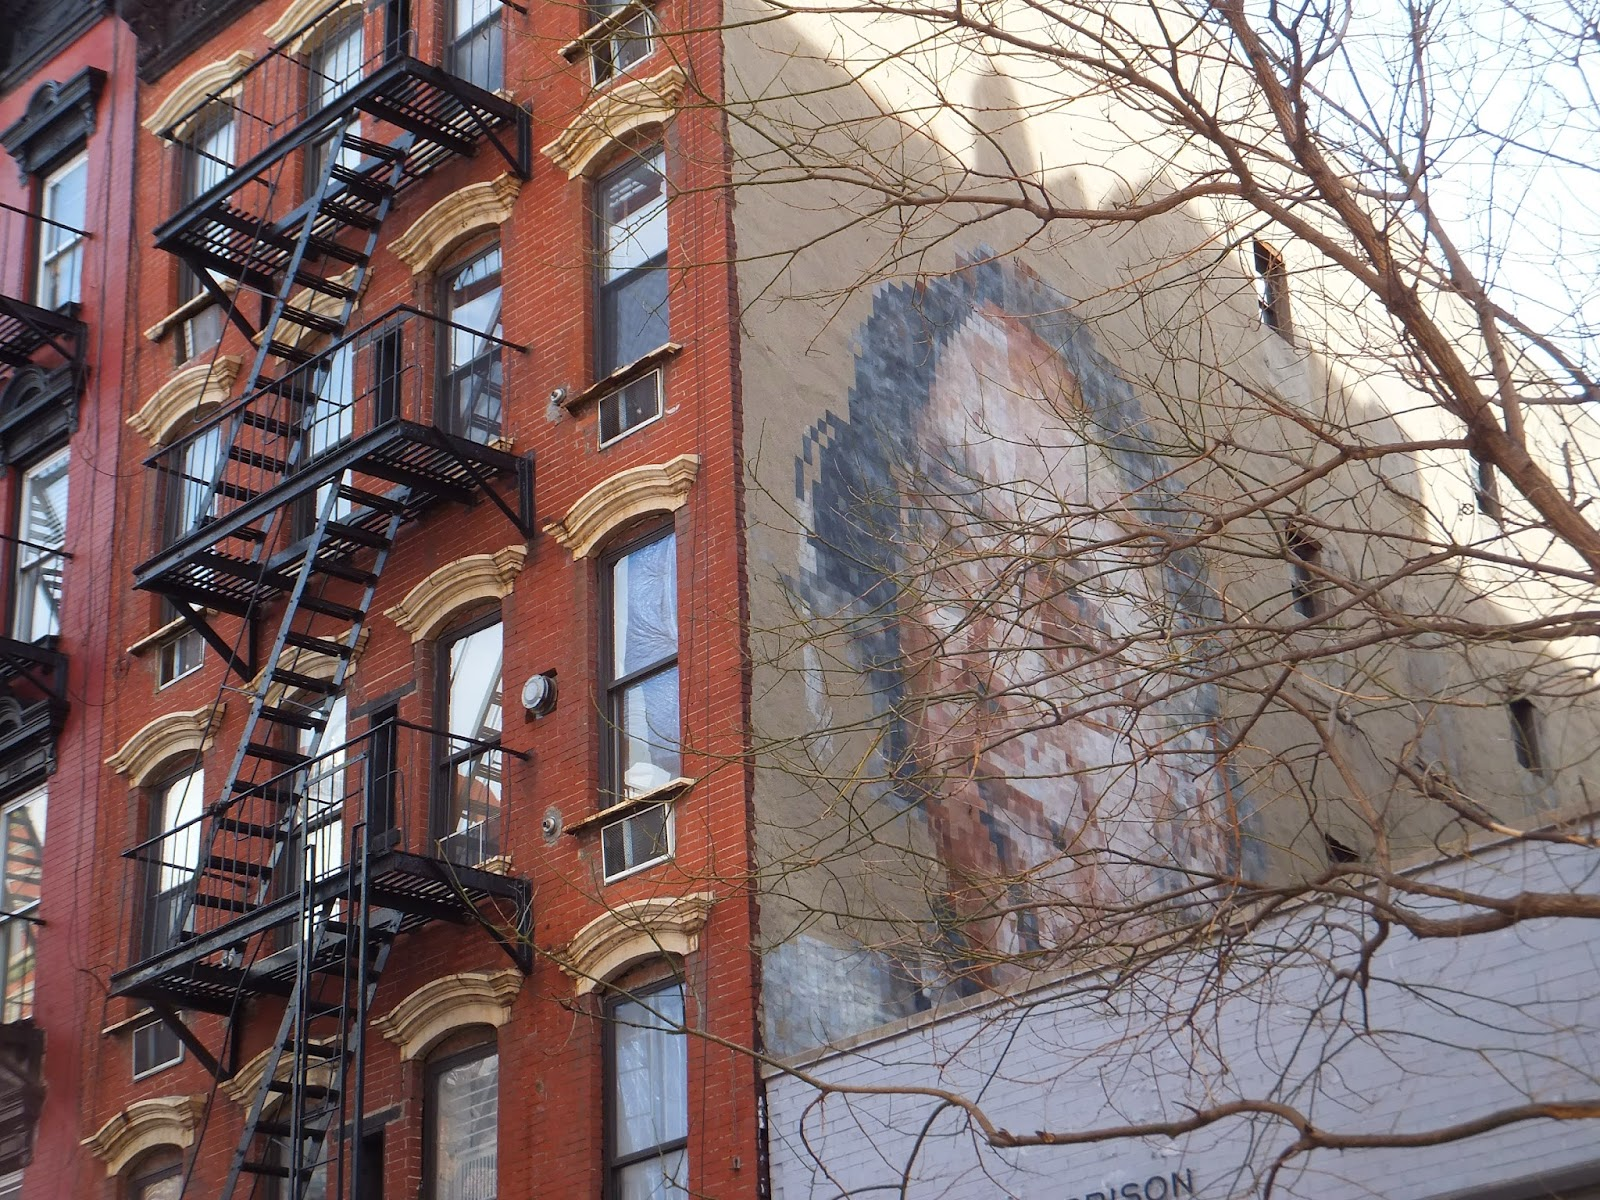 Street Art, Arte Callejero, Lower East Side, Manhattan, Elisa N, Blog de Viajes, Lifestyle, Travel